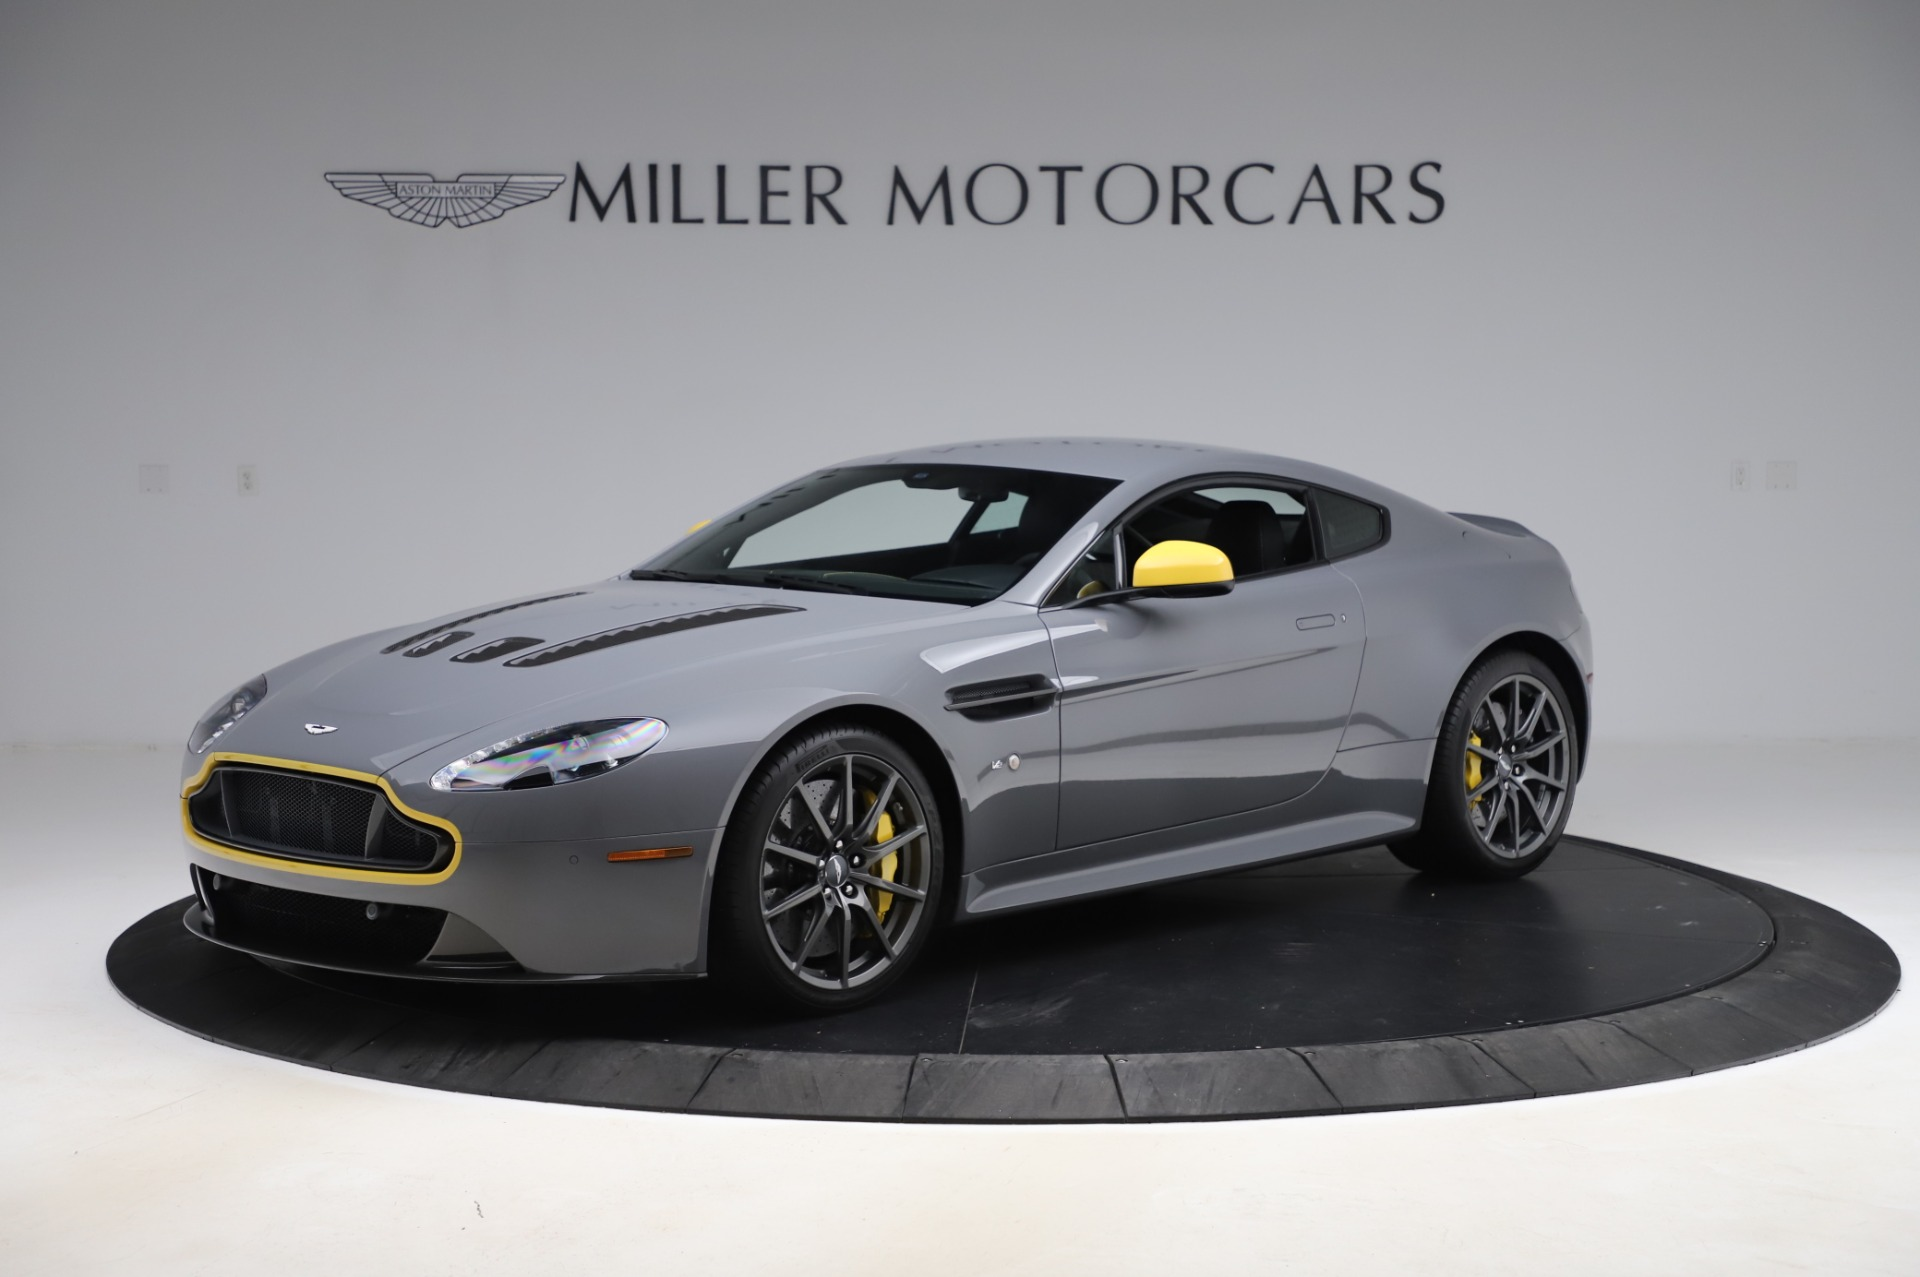 Used 2017 Aston Martin V12 Vantage S for sale $185,900 at Aston Martin of Greenwich in Greenwich CT 06830 1